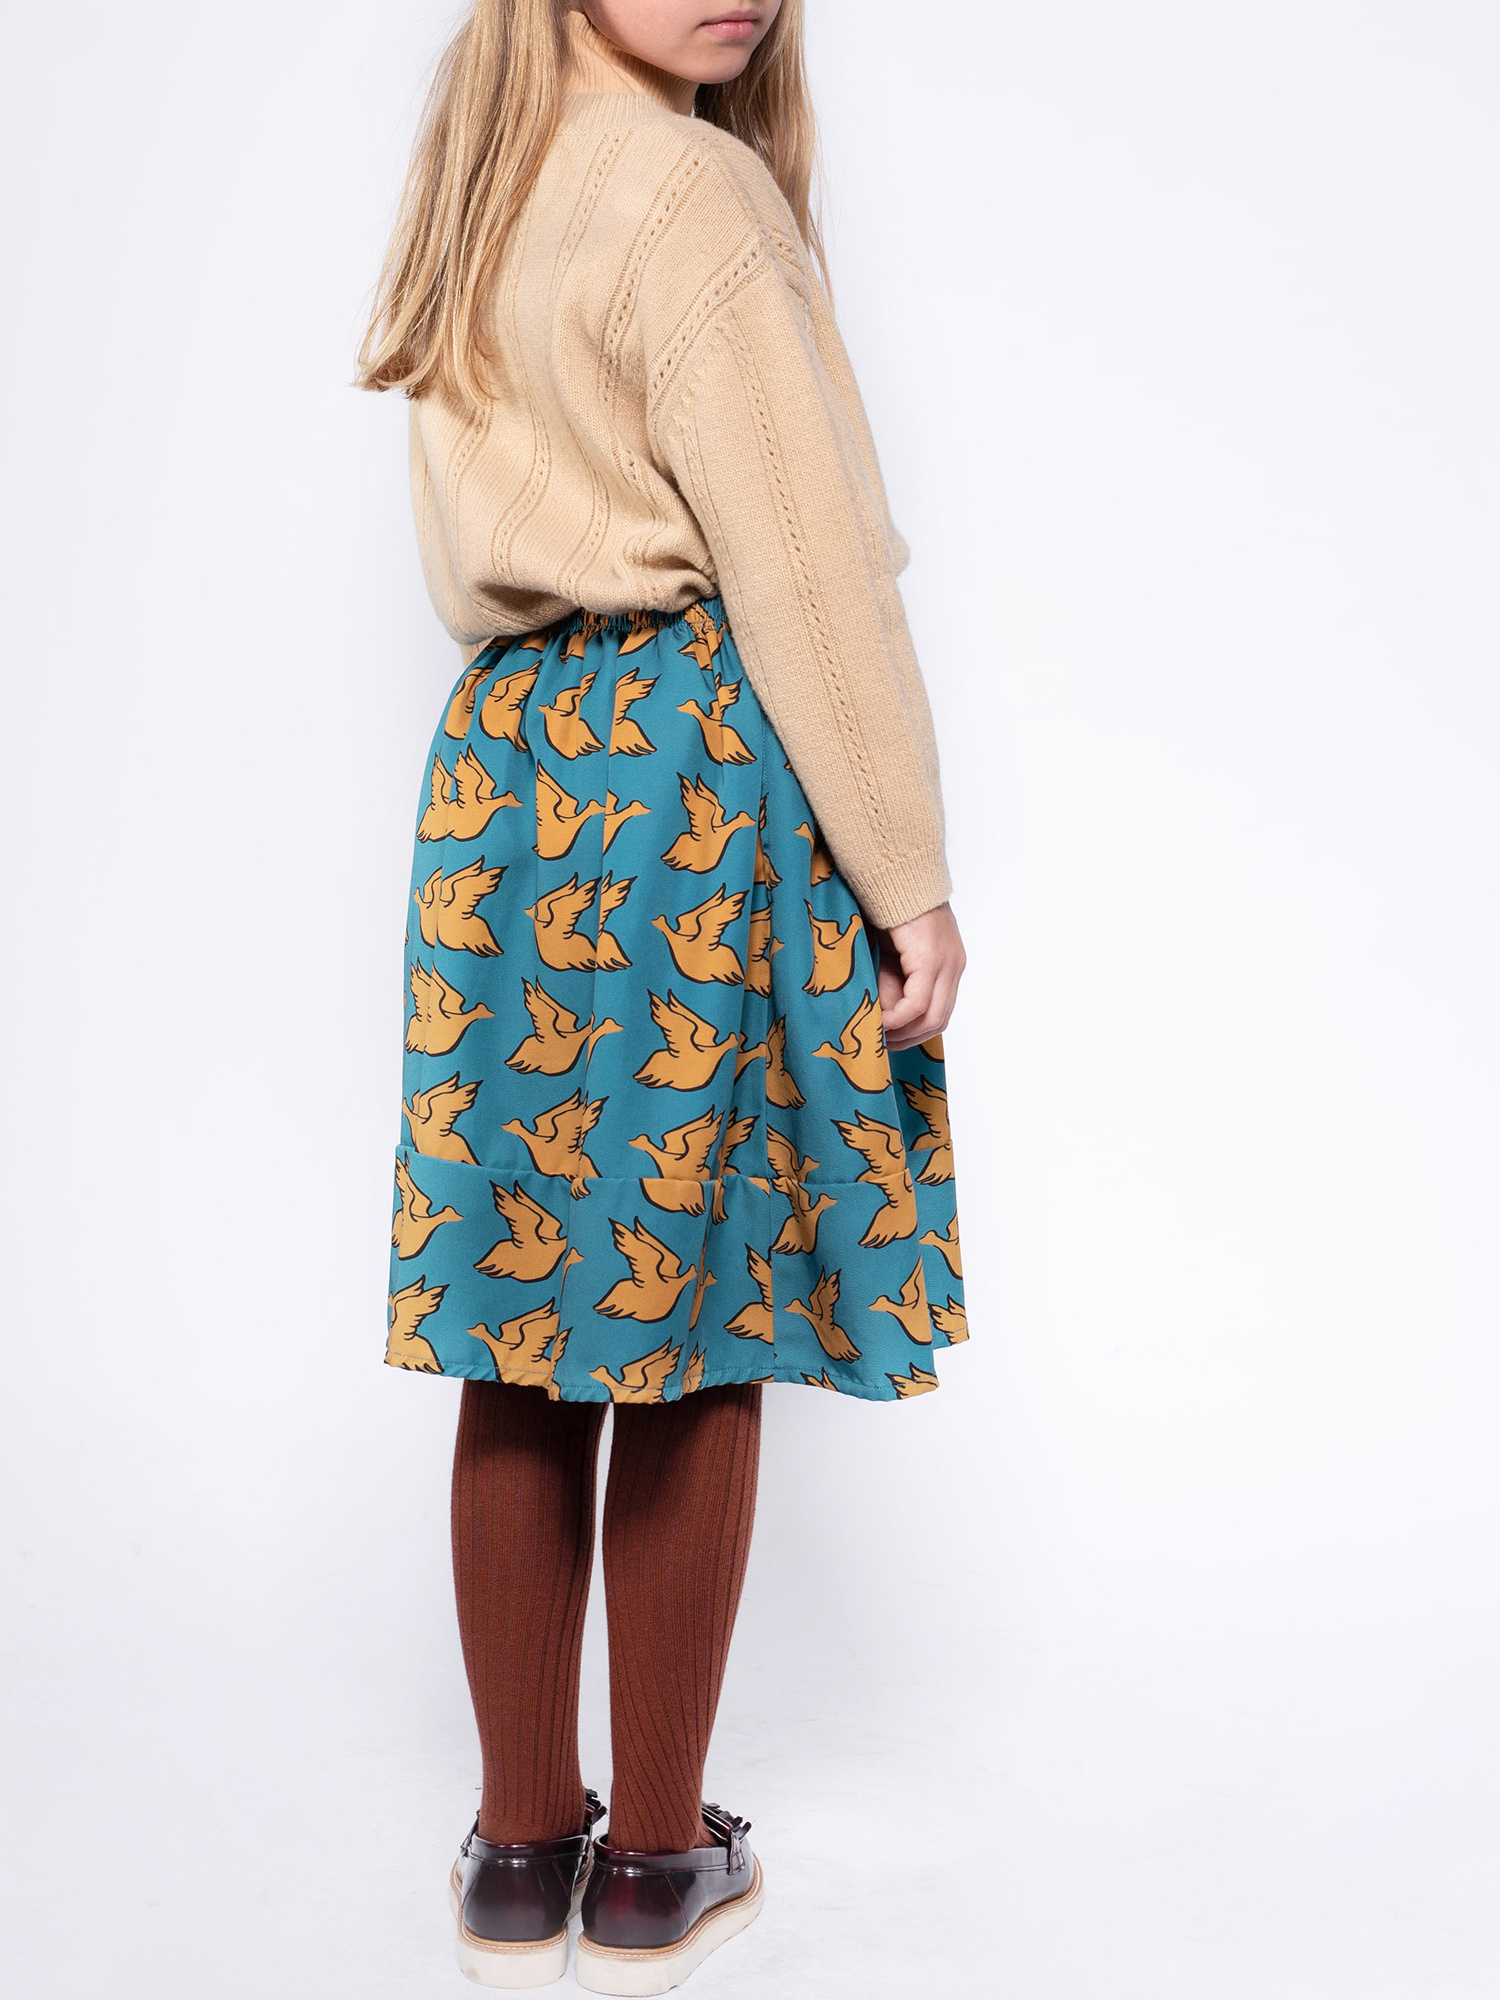 Skirt - The Bird-3